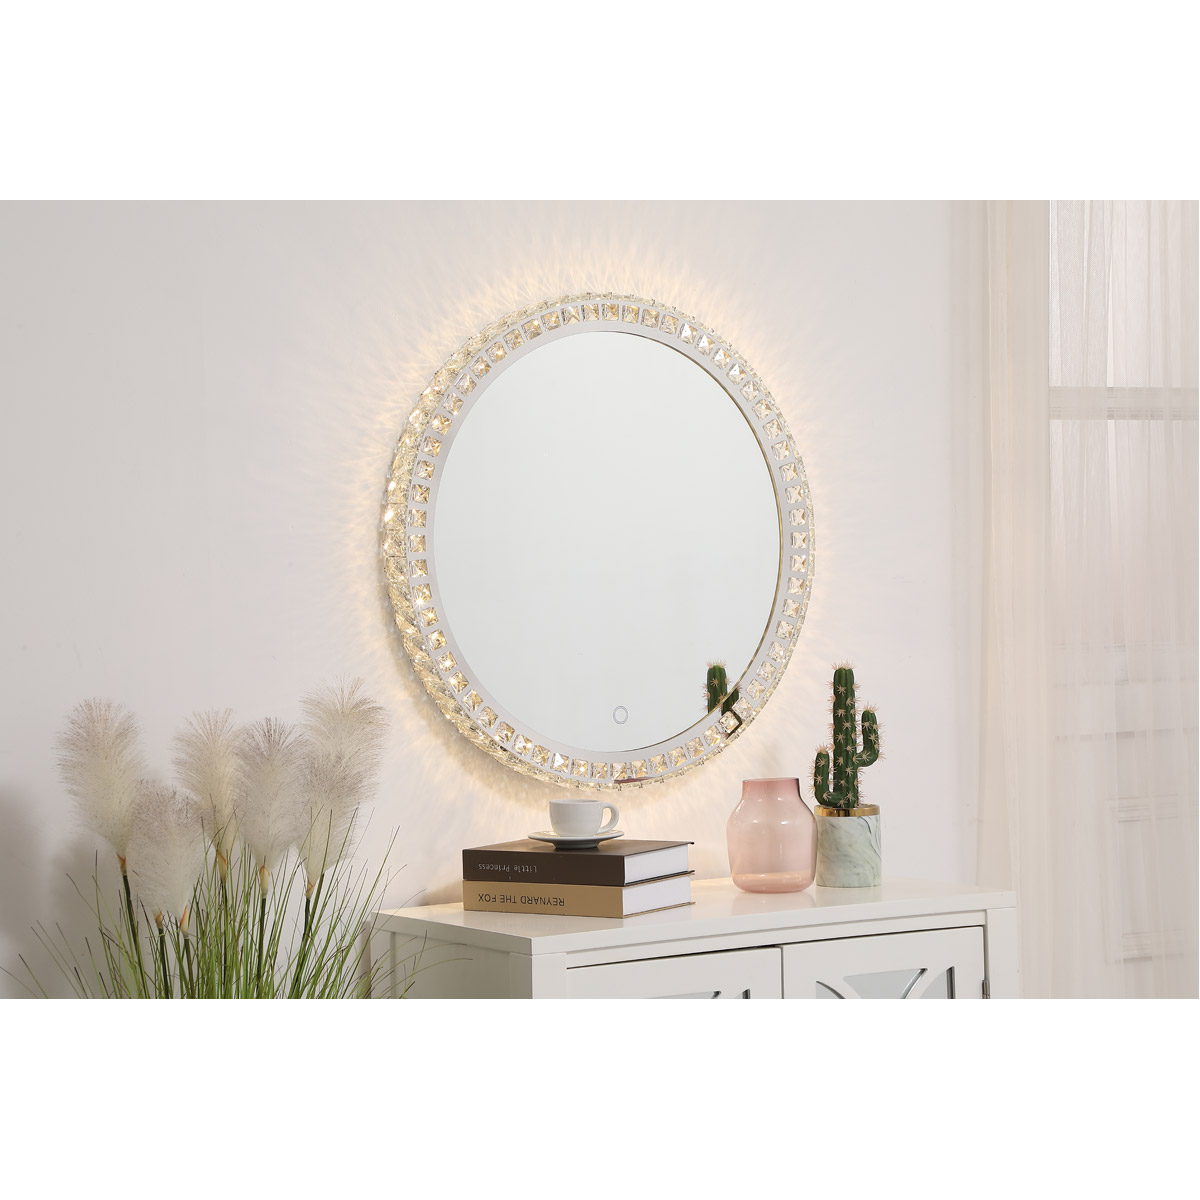 Wall Mirror Has Crystals Lighted Hollywood Bedroom Makeup Vanity Dimmable Lights Ebay